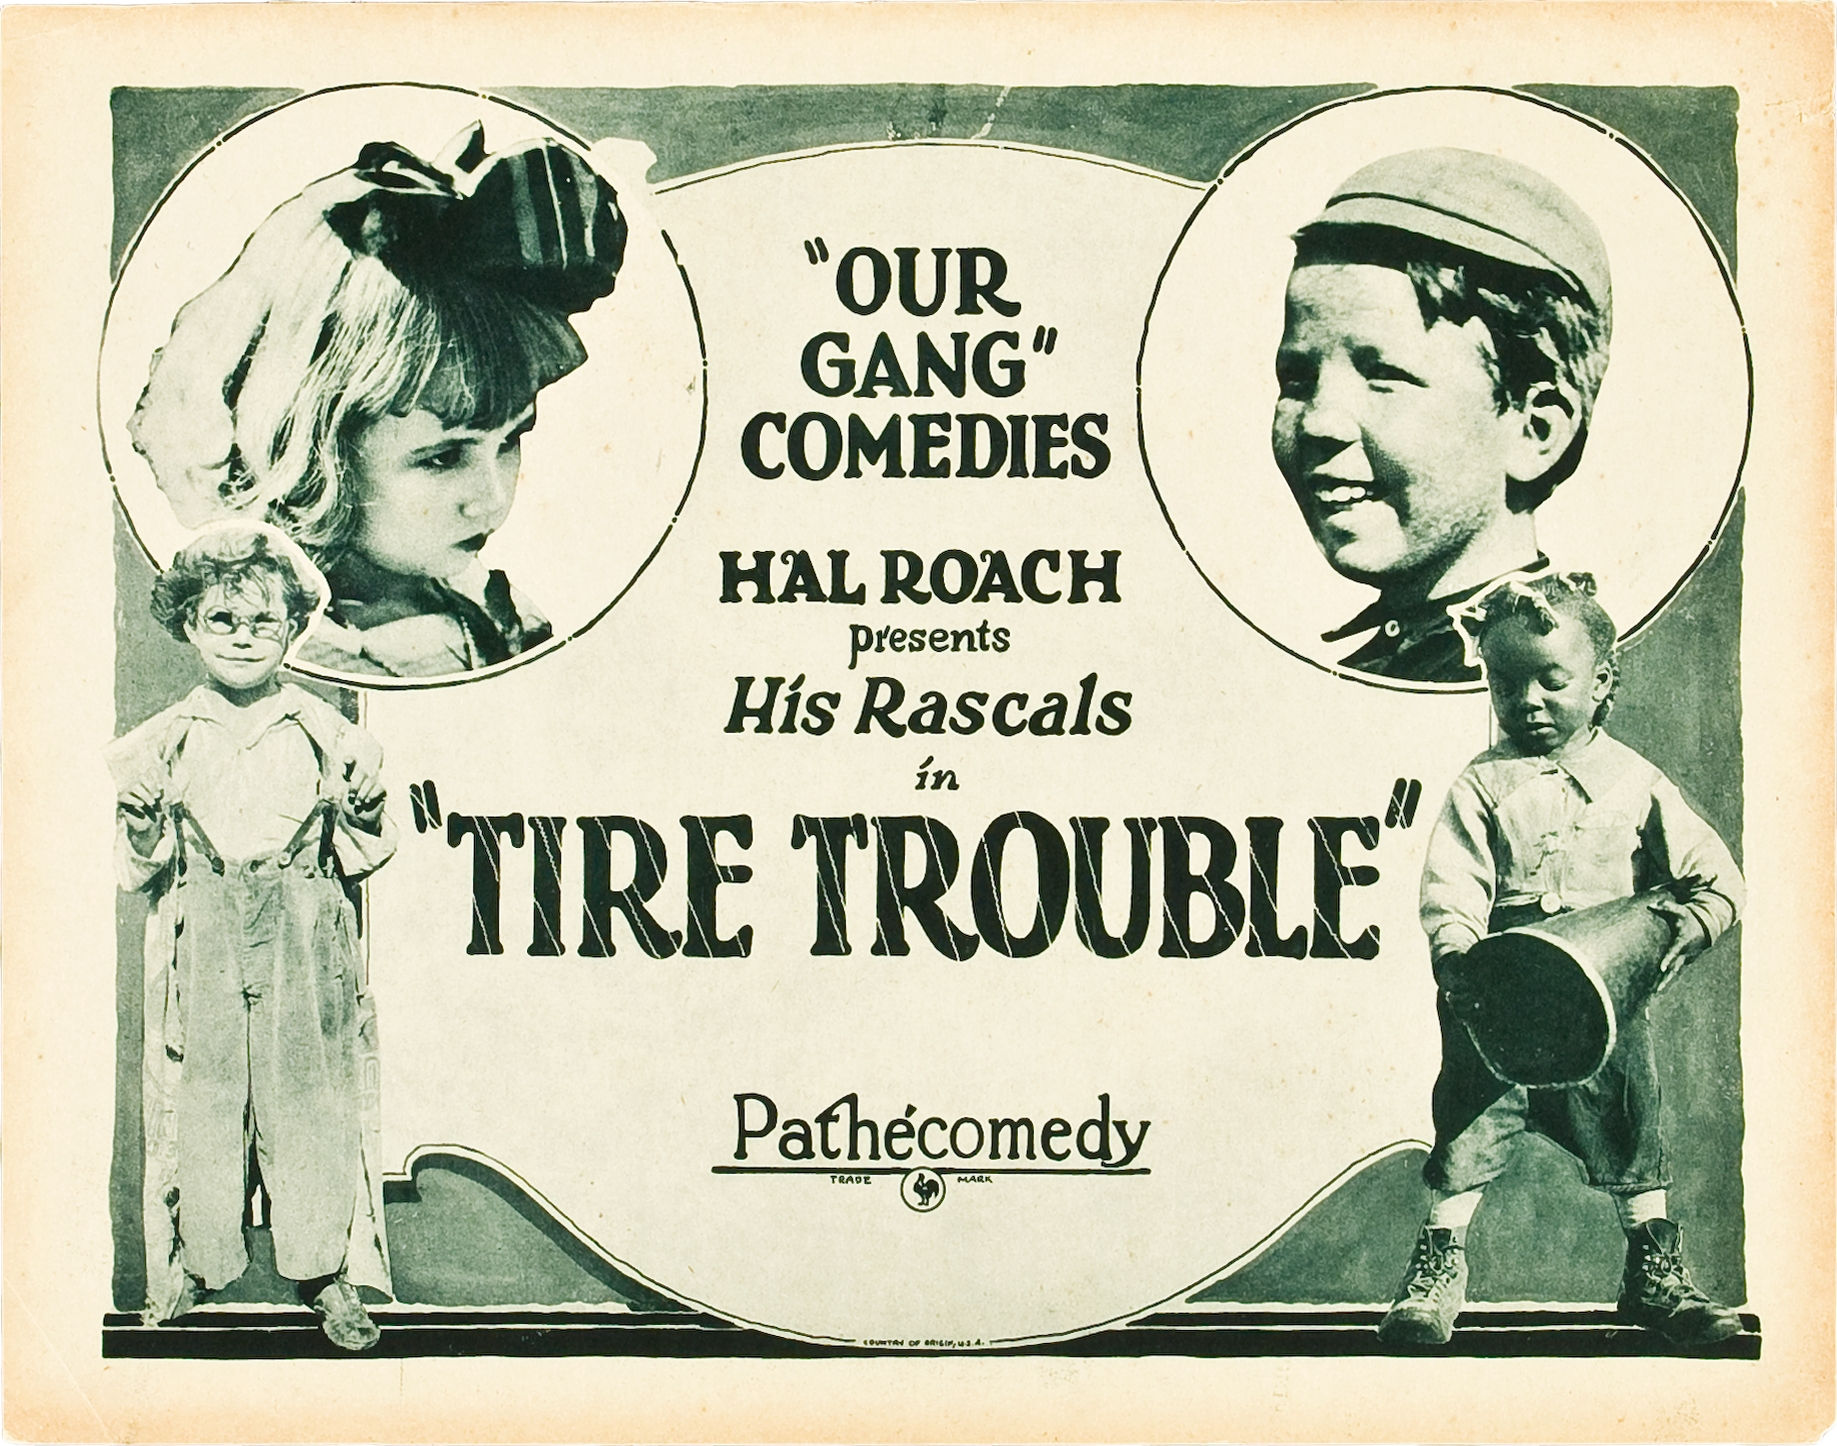 Jackie Condon, Mickey Daniels, Allen 'Farina' Hoskins, and Mary Kornman in Tire Trouble (1924)